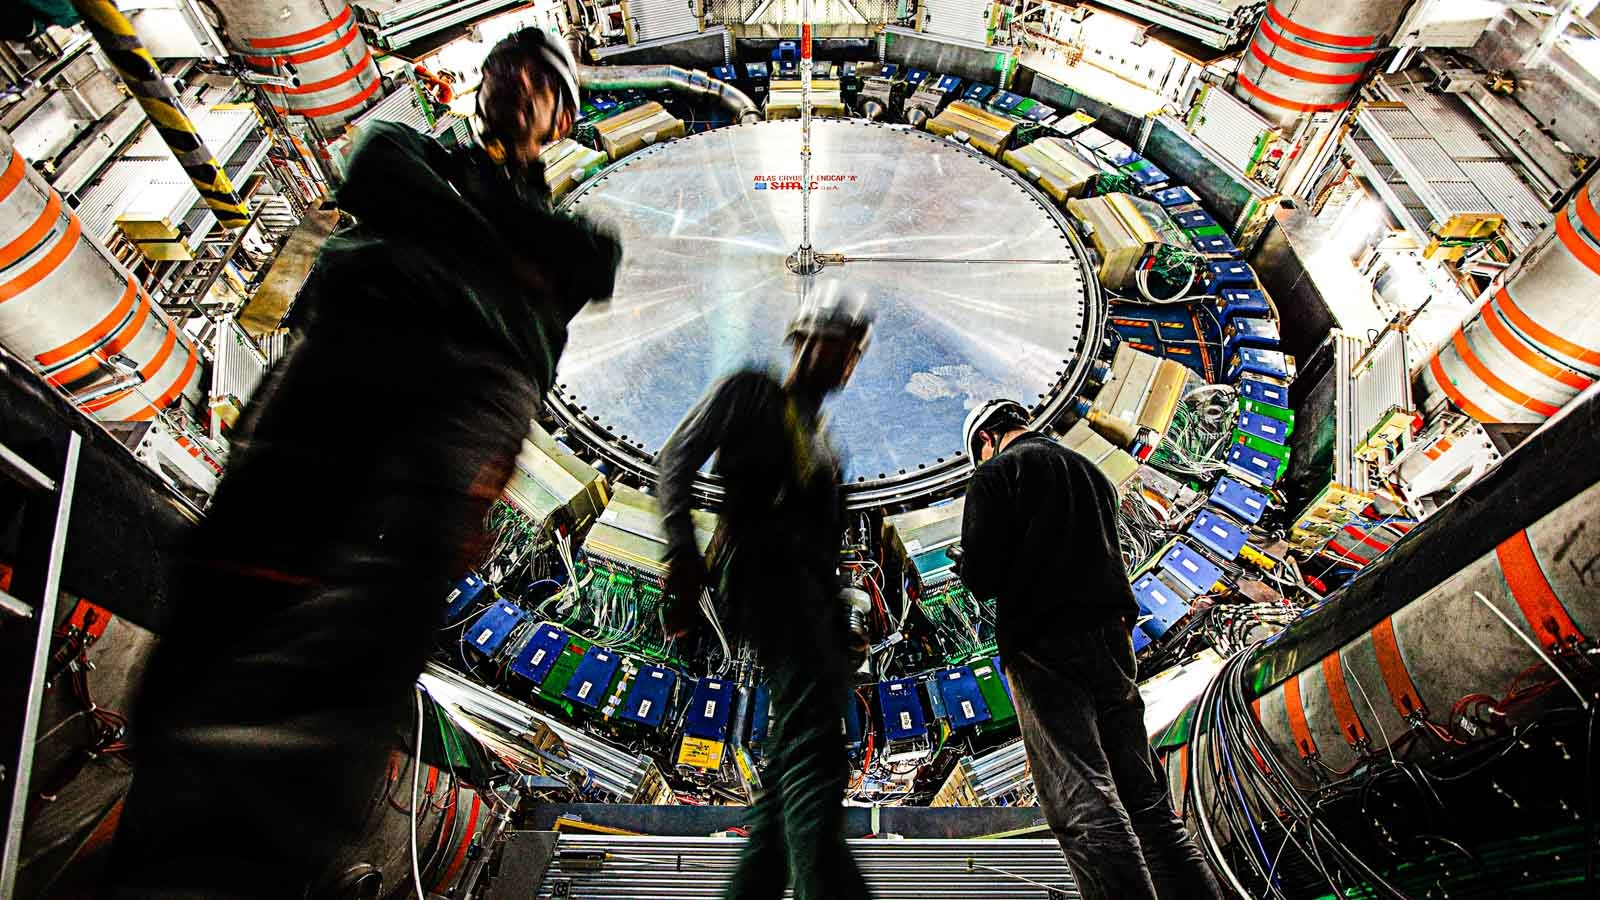 Workers inside ATLAS, one of several primary detectors for the Large Hadron Collider at CERN. ATLAS witnesses a billion particle interactions every second and the signatures of new particles created in near-speed-of-light proton-proton collisions. (Image by CERN.)